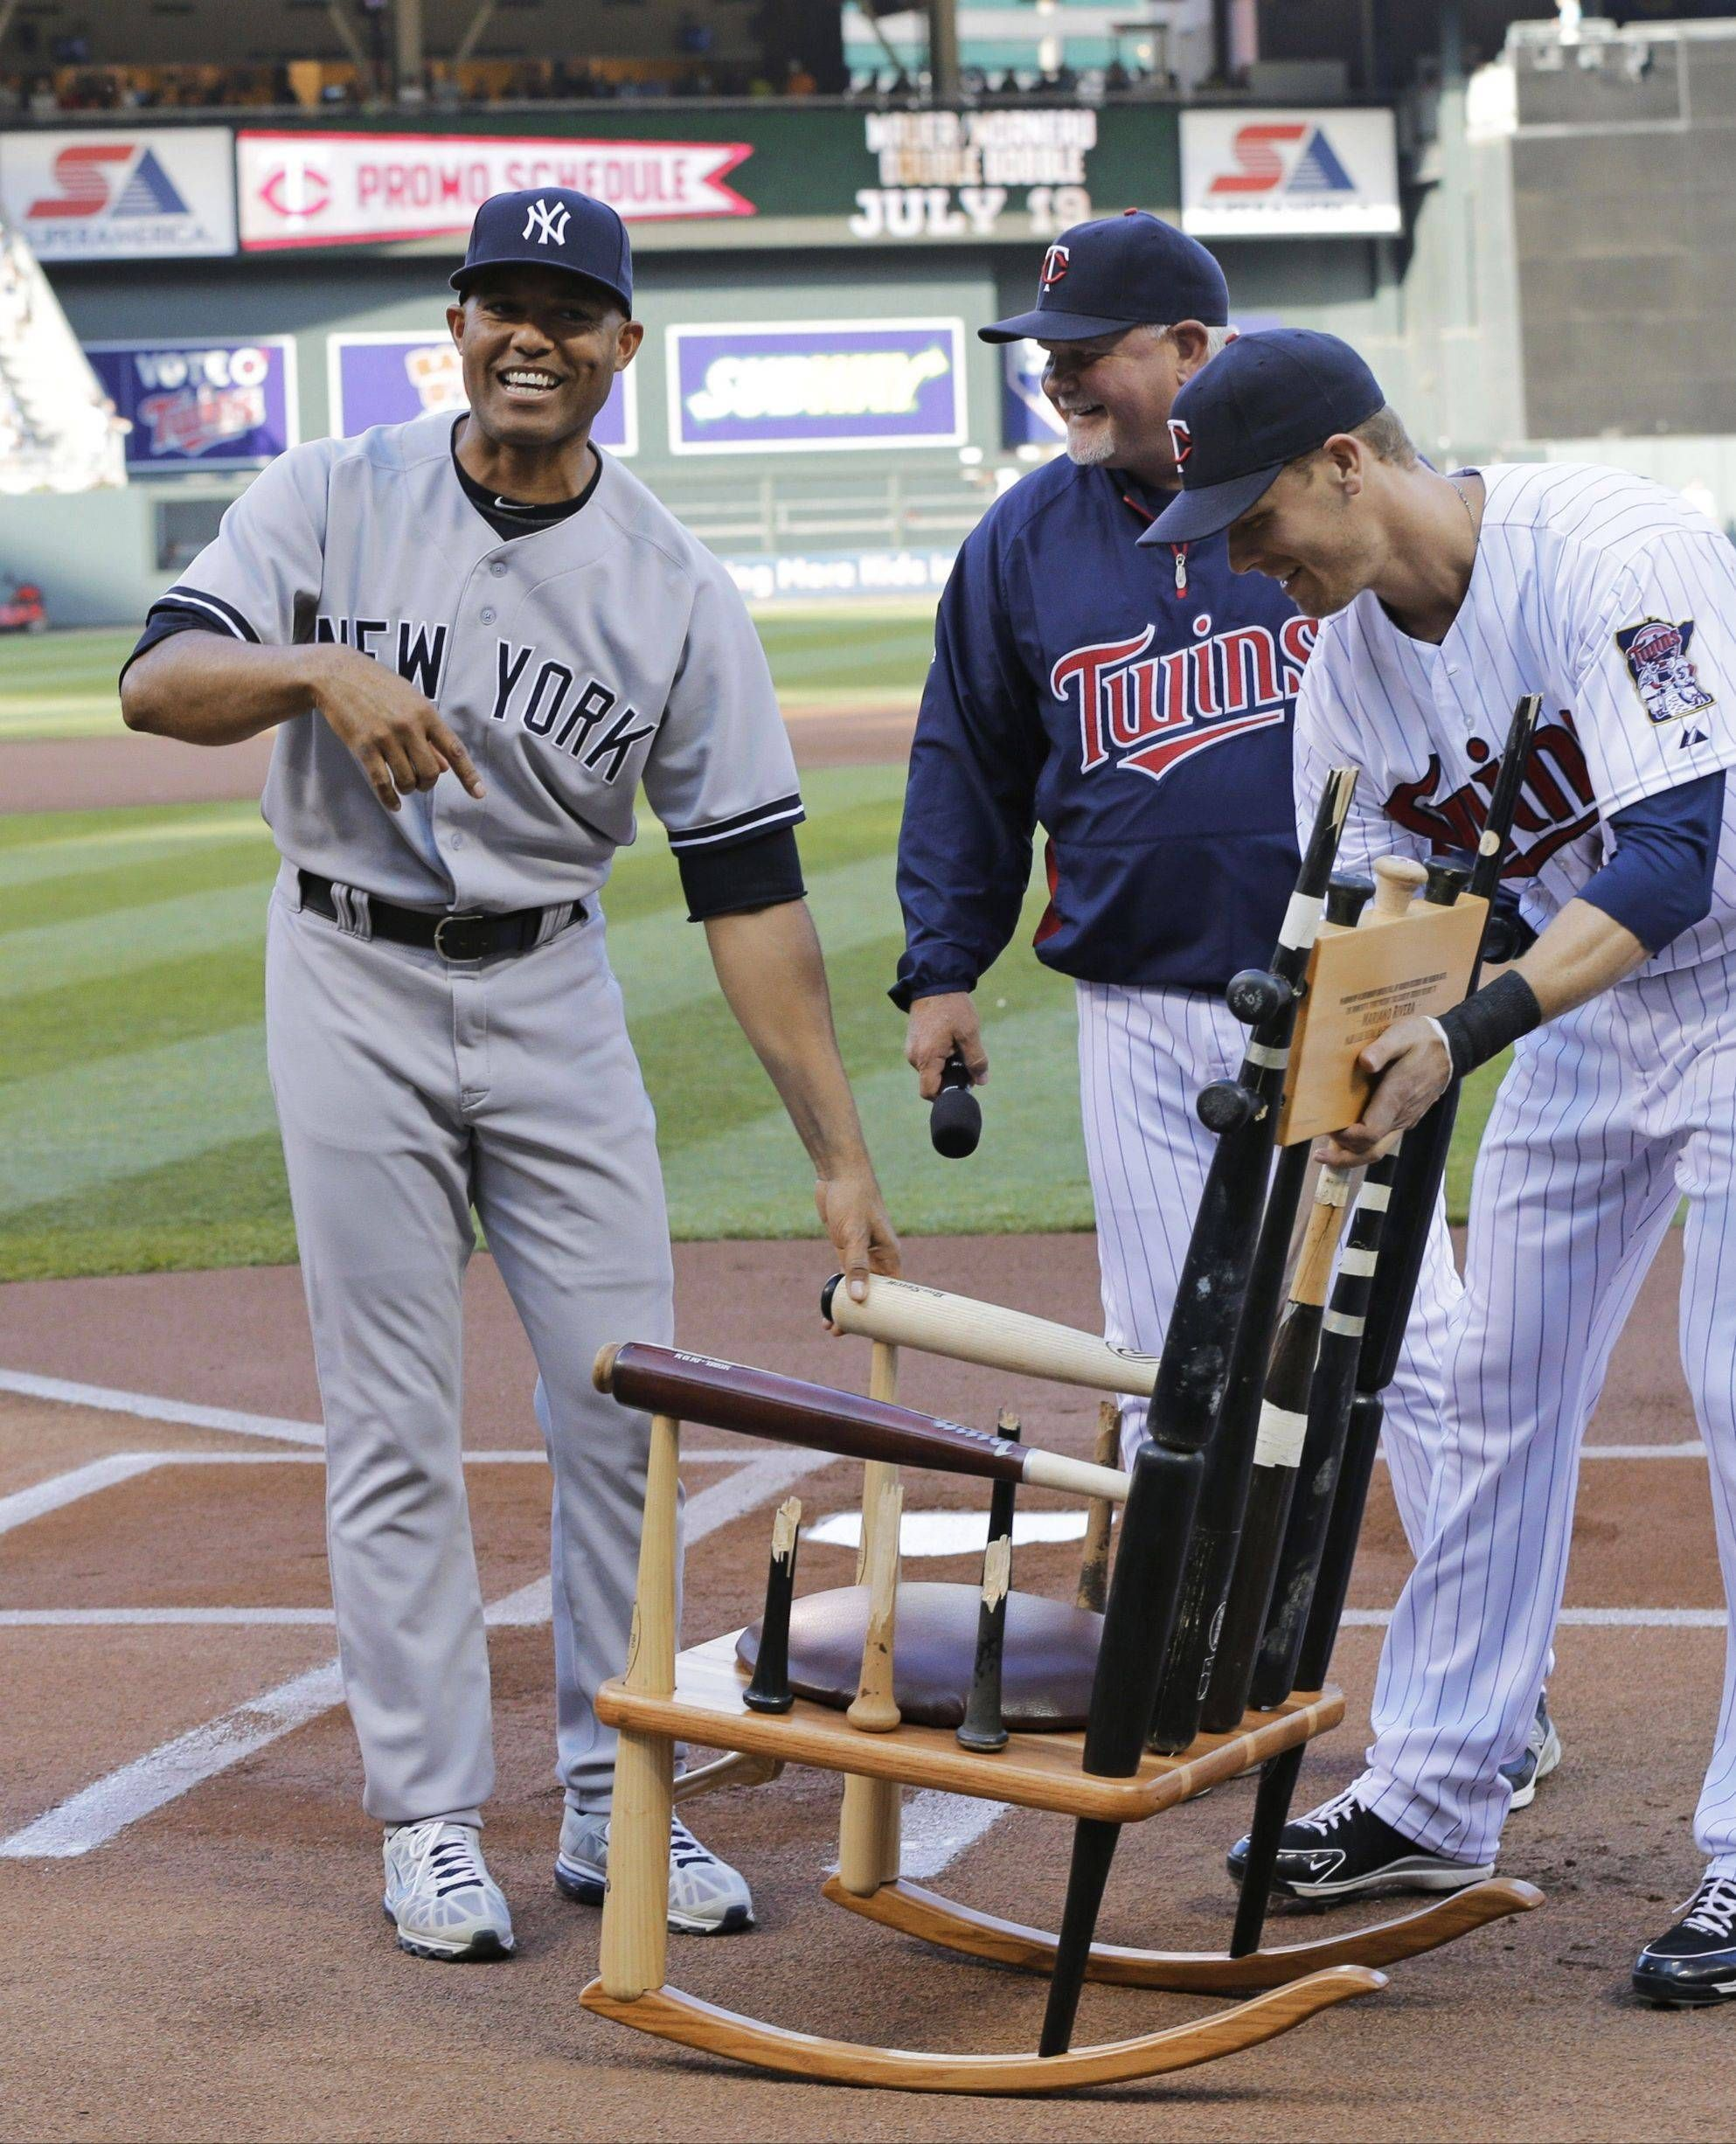 7c9bbc26367 Minnesota Twins gift retiring Yankee pitcher Mariano Rivera a rocking chair  made with bats he has broken over his career.